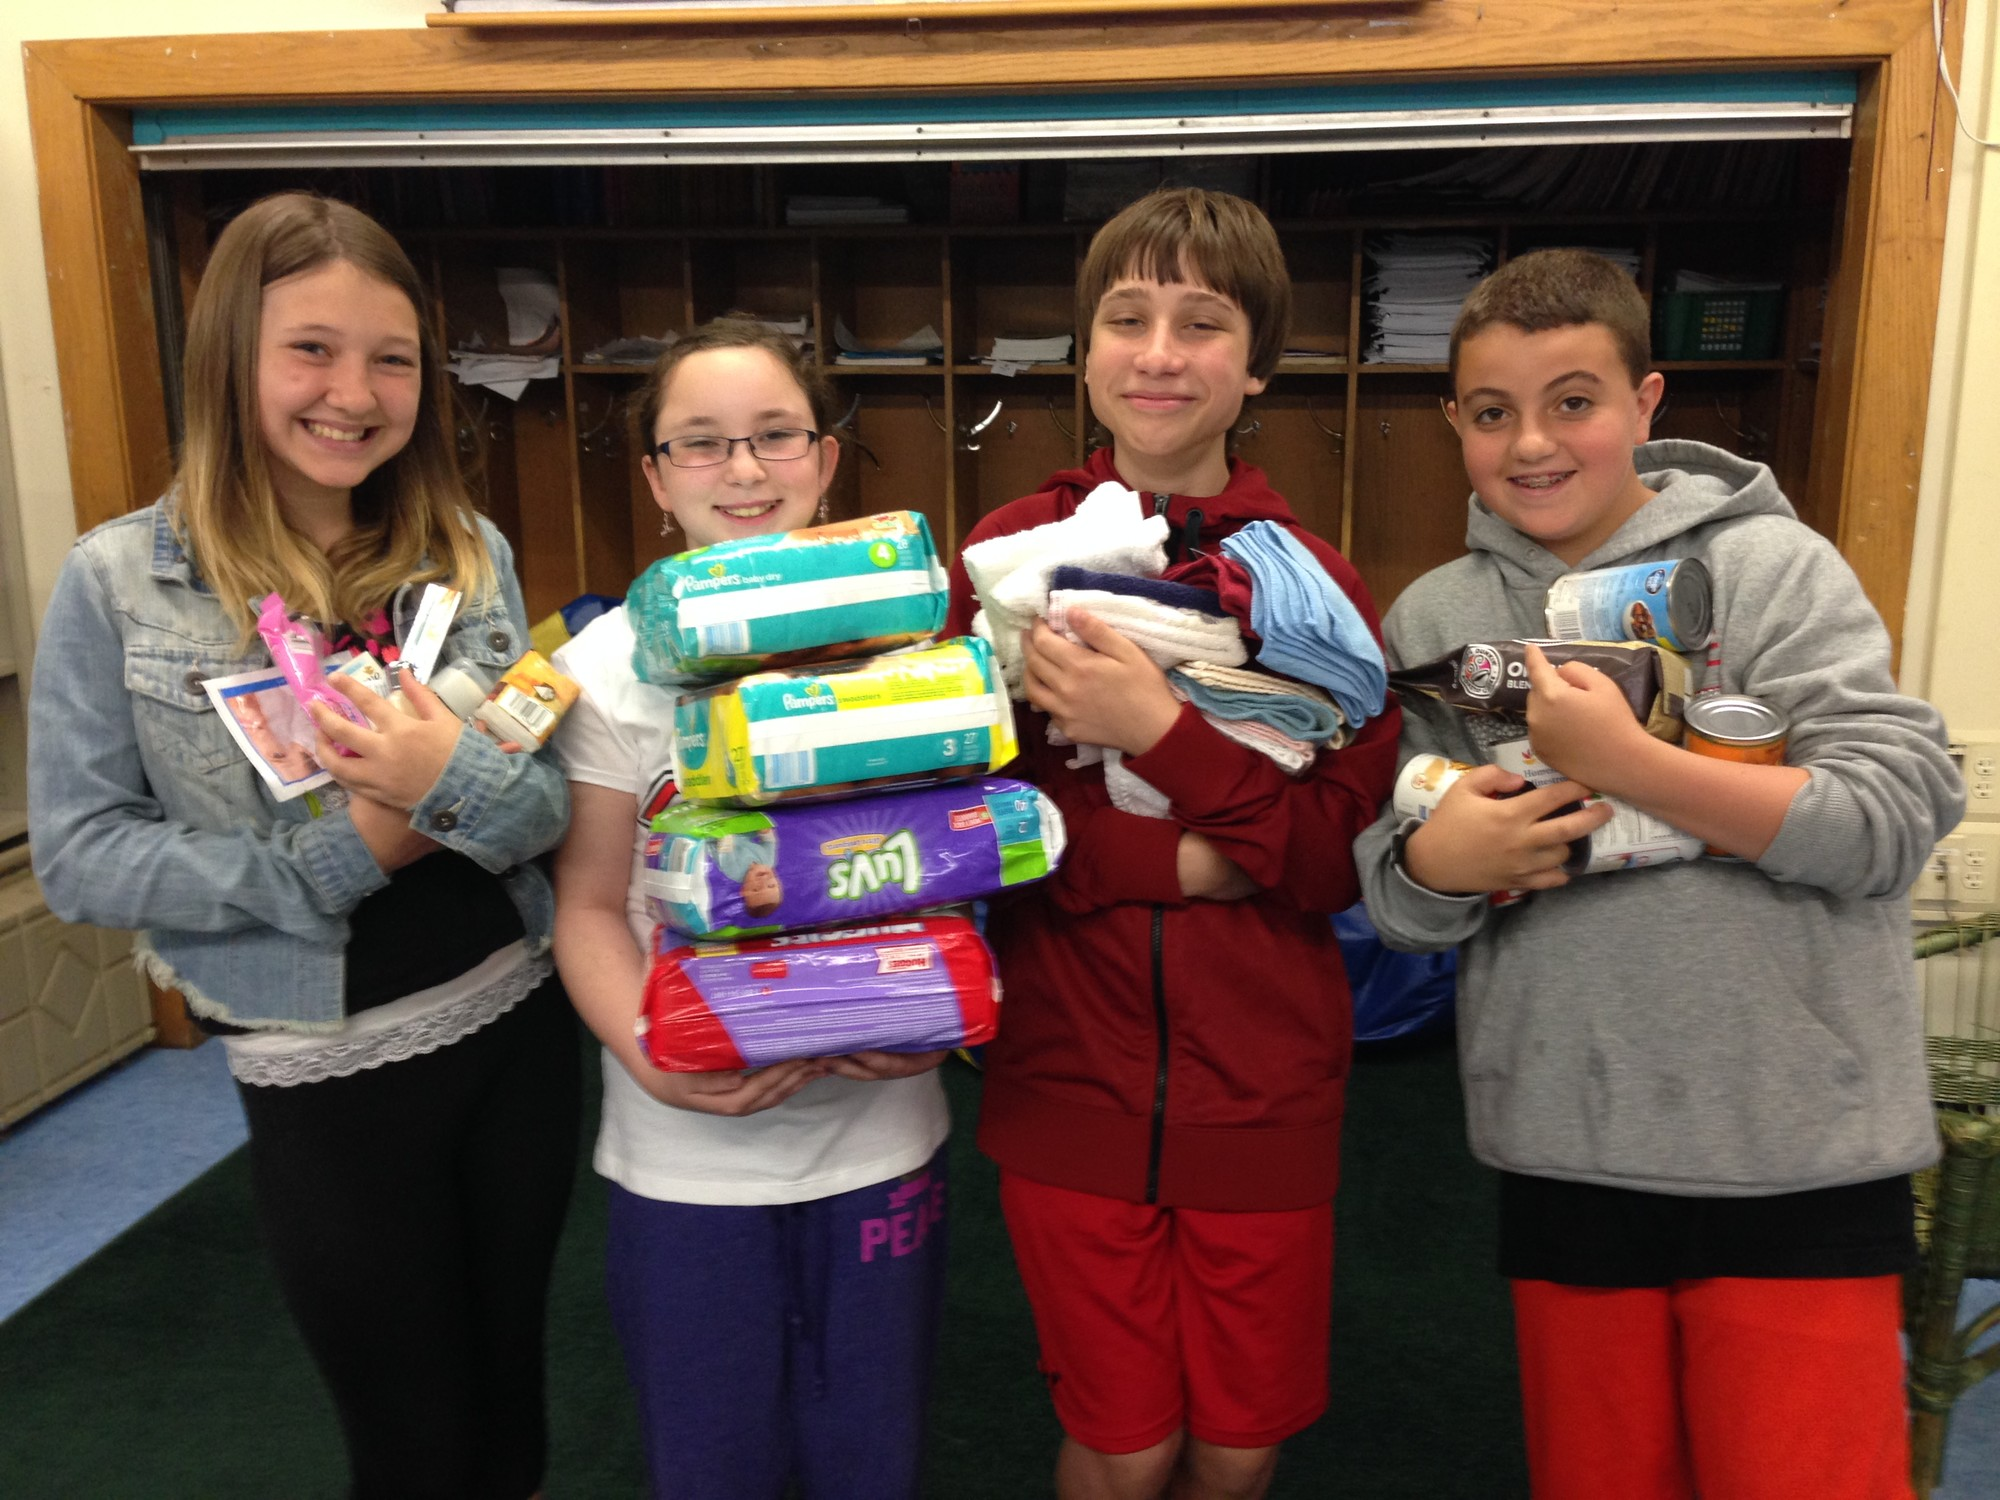 Emma Padula, Lillian Stone, Connor Desmond and Andrew Heffez, from left, contributed to the collection for the Interfaith Nutrition Network.